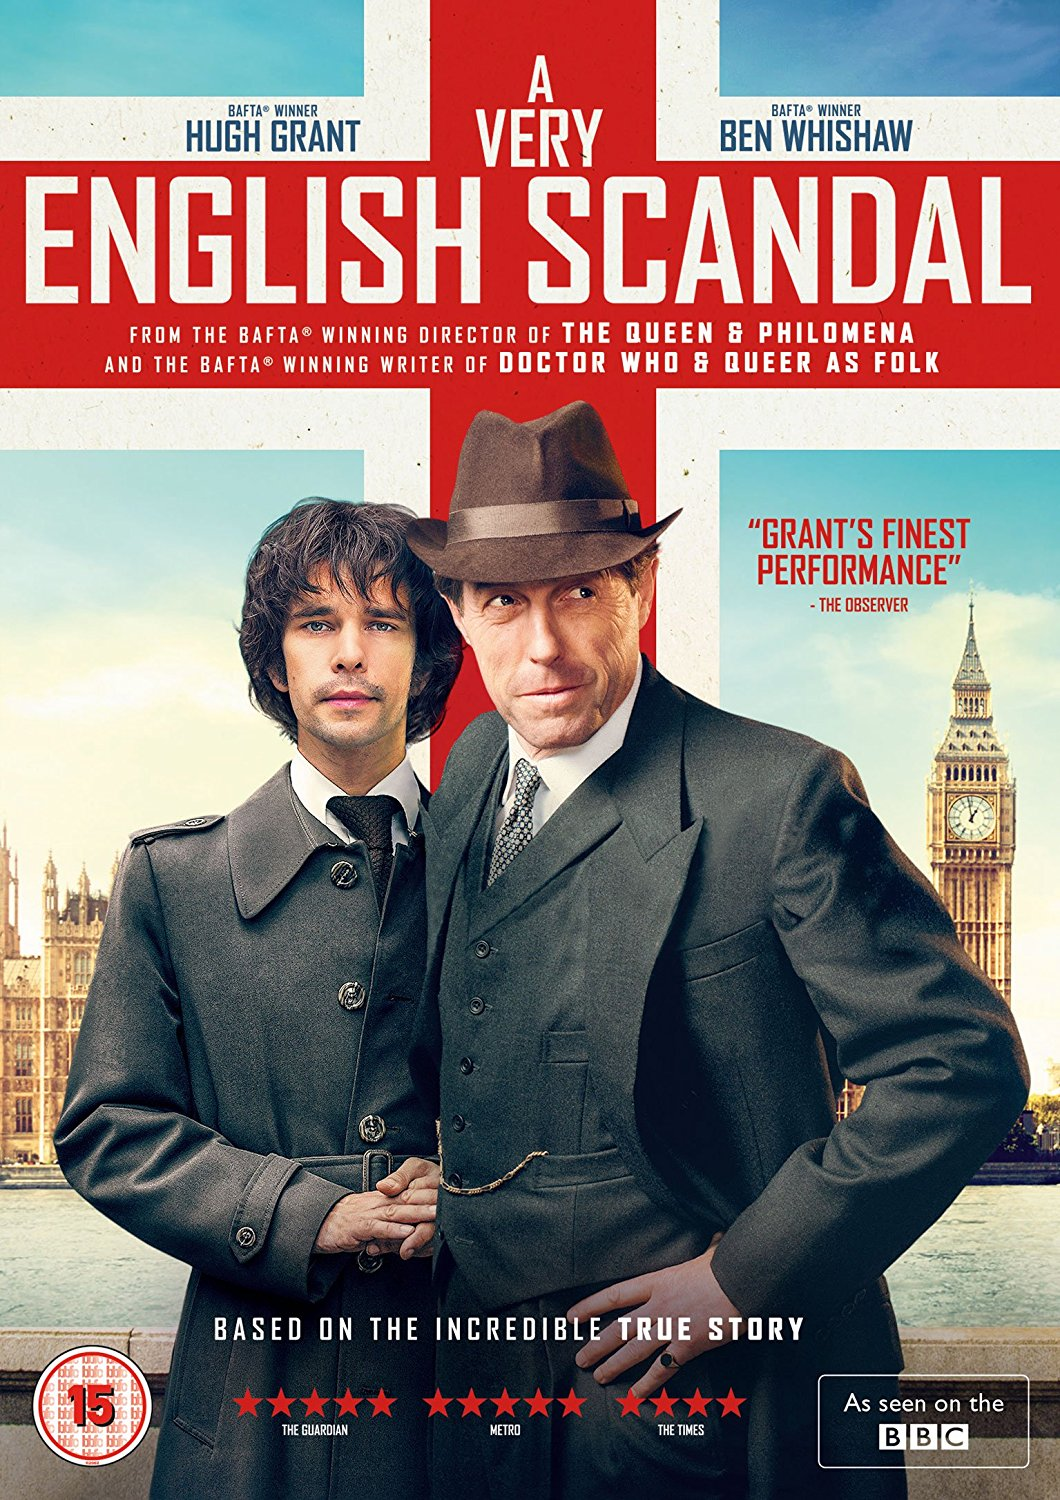 English Scandal dvd